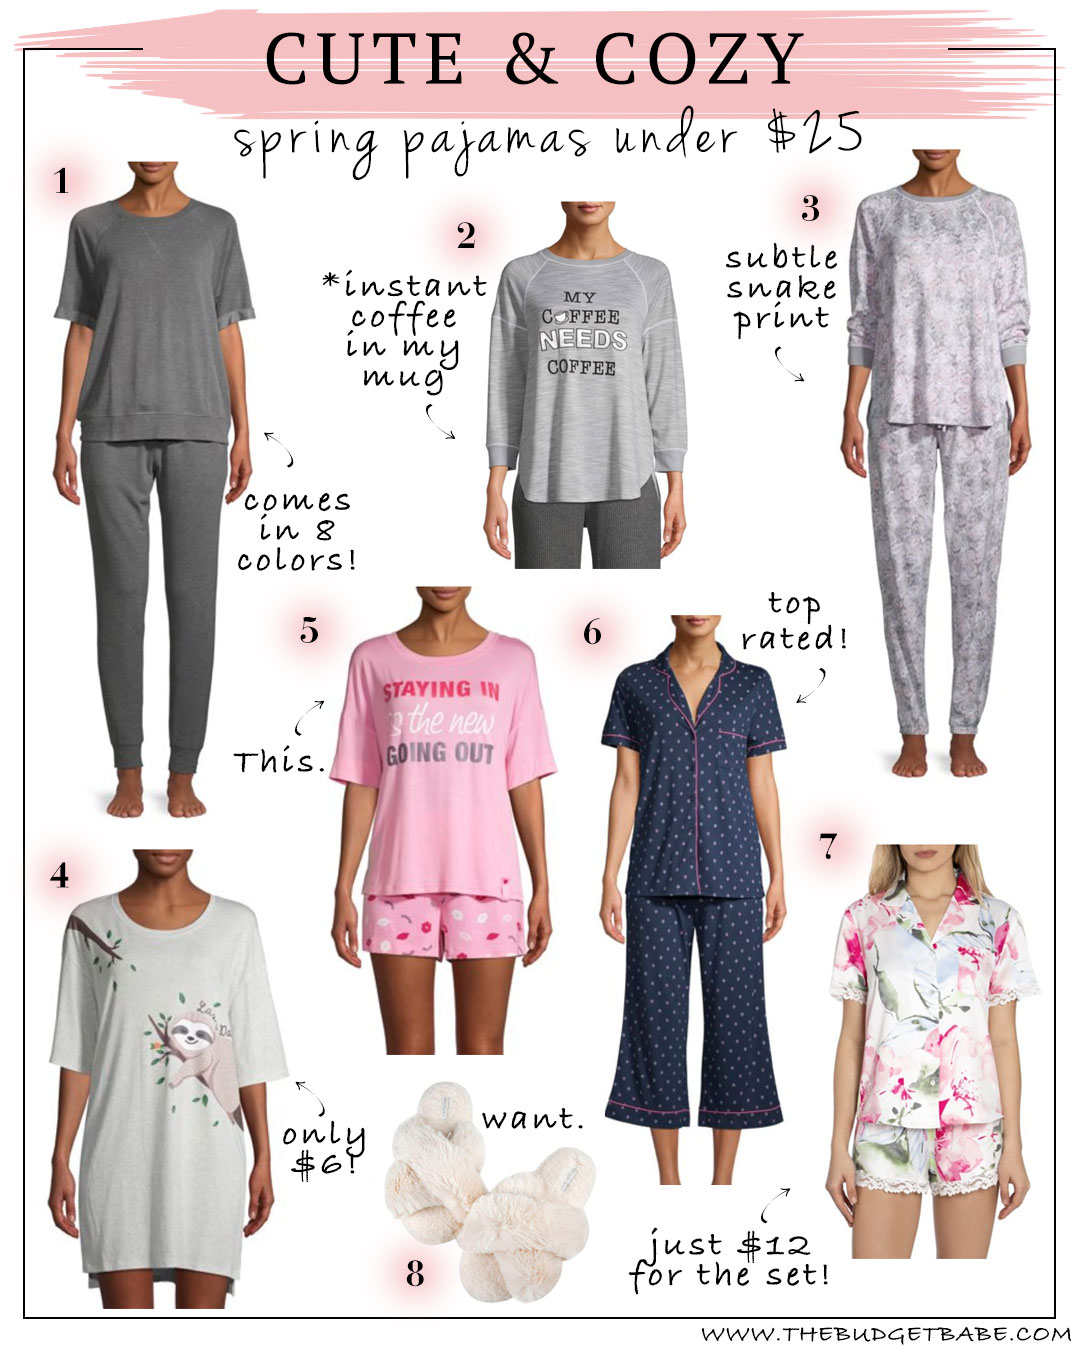 Spring pajamas under $25! Might as well...